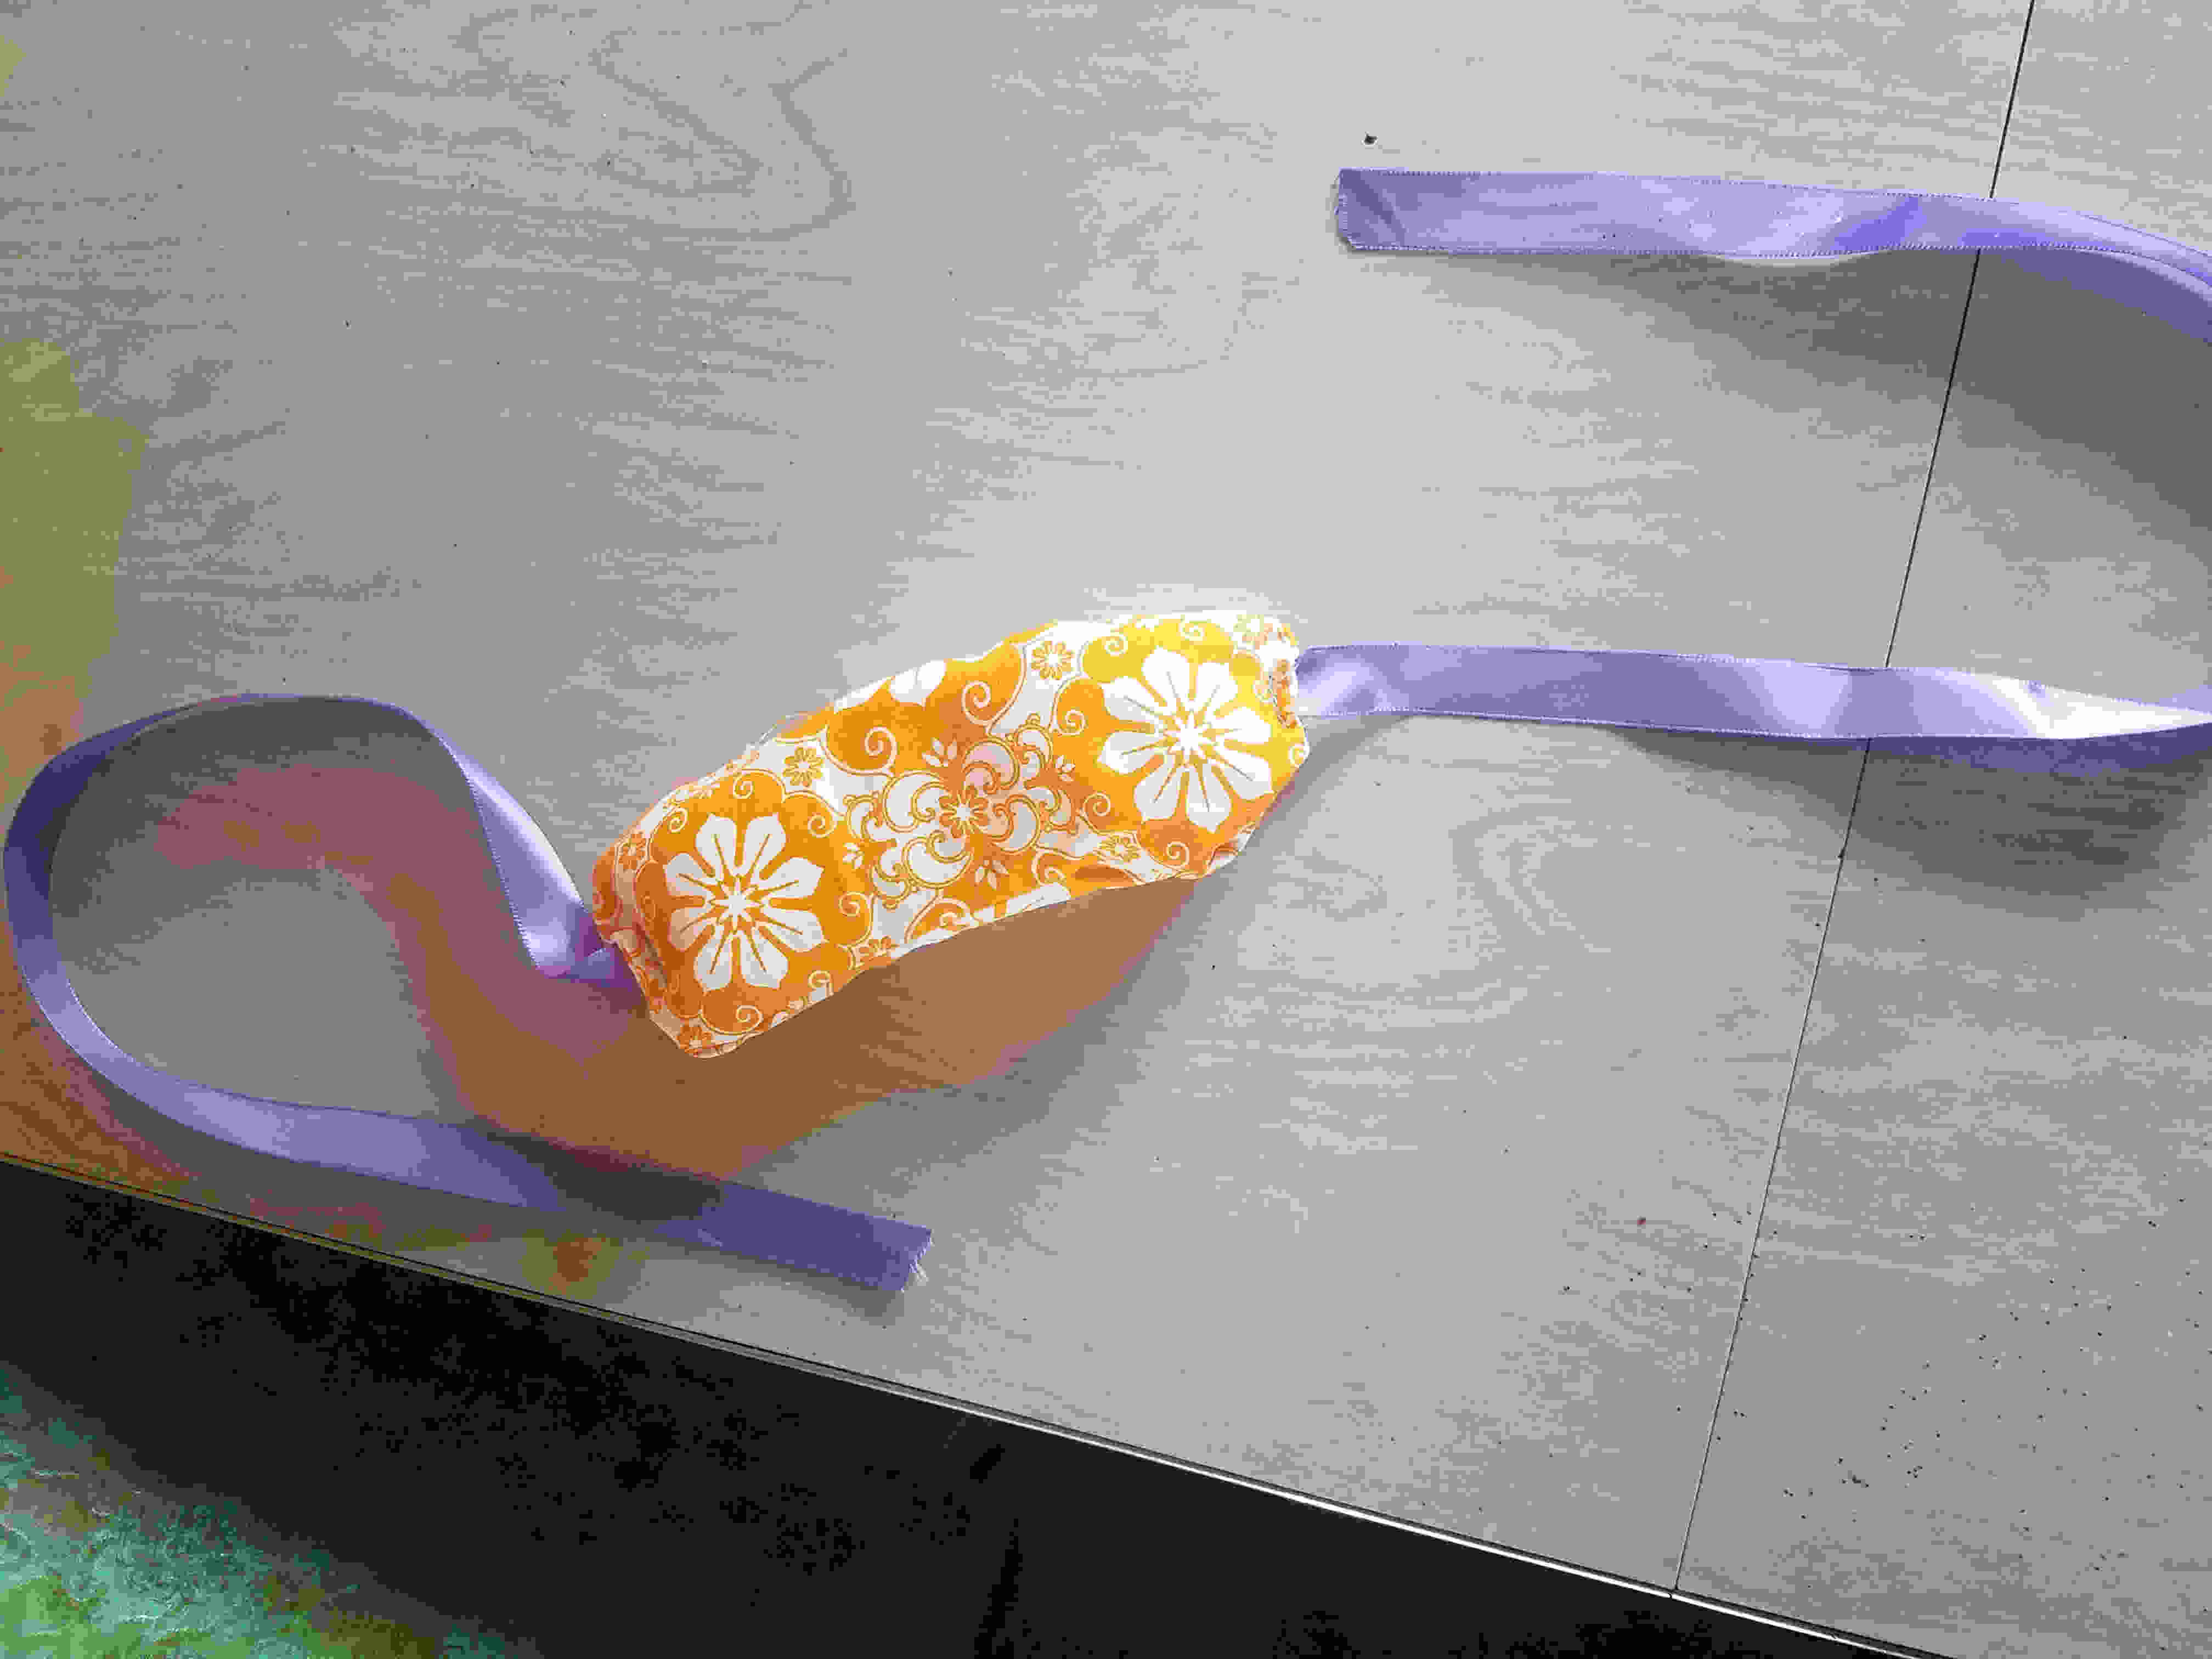 Homemade eye mask with bright orange fabric and light purple ribbon by The Healthy RD